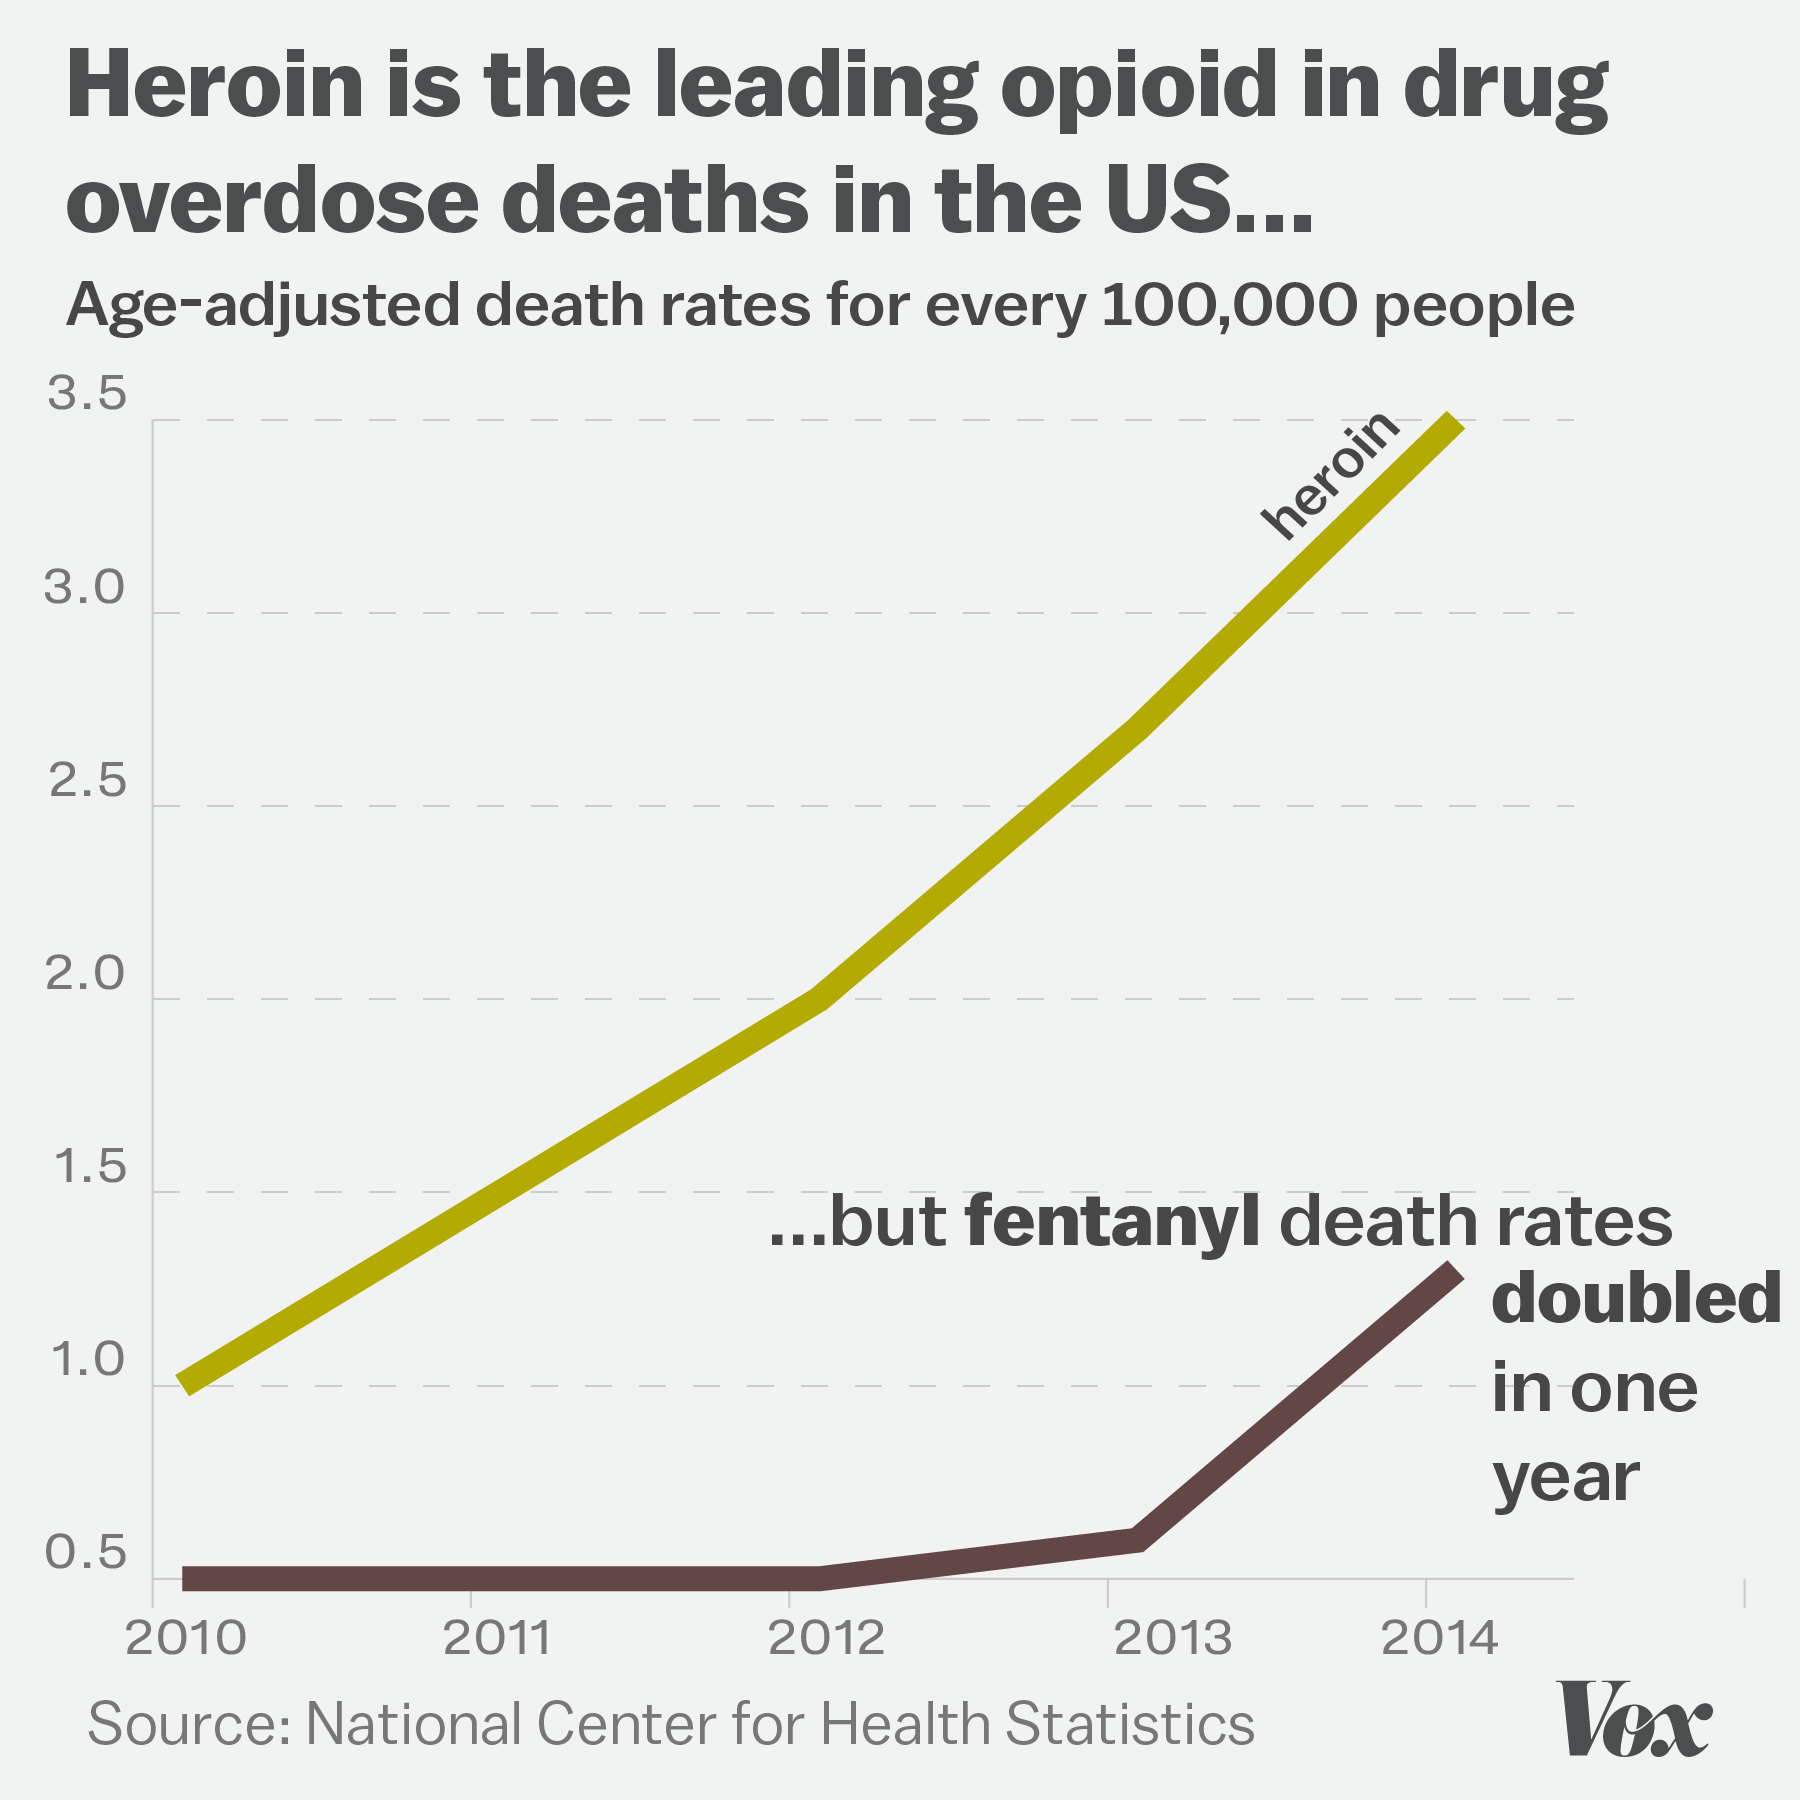 1 in 4 Drug Overdoses in the US Are from Heroin